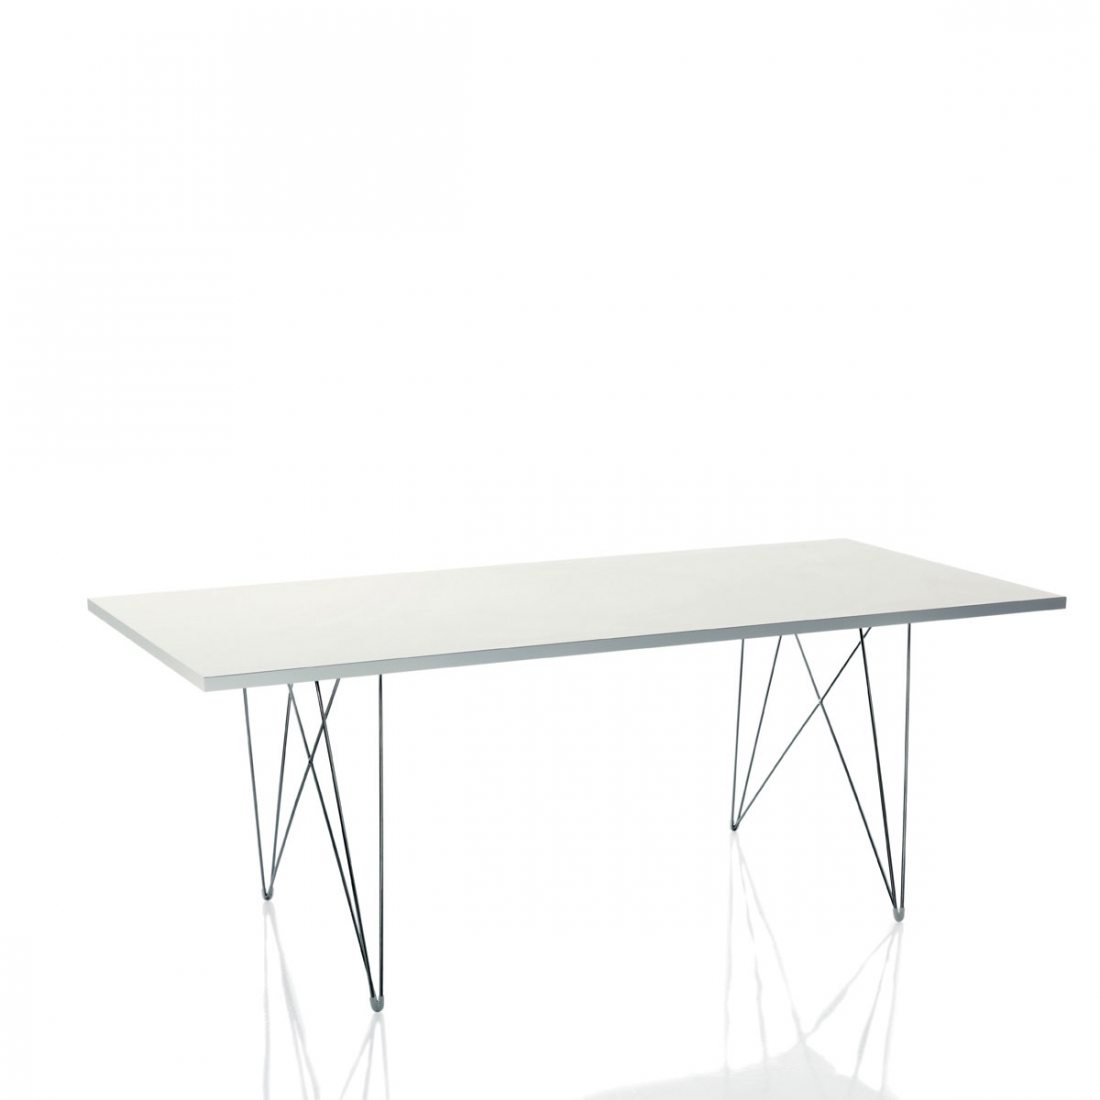 Table rectangulaire tavolo magis zendart design - Table rectangulaire design ...